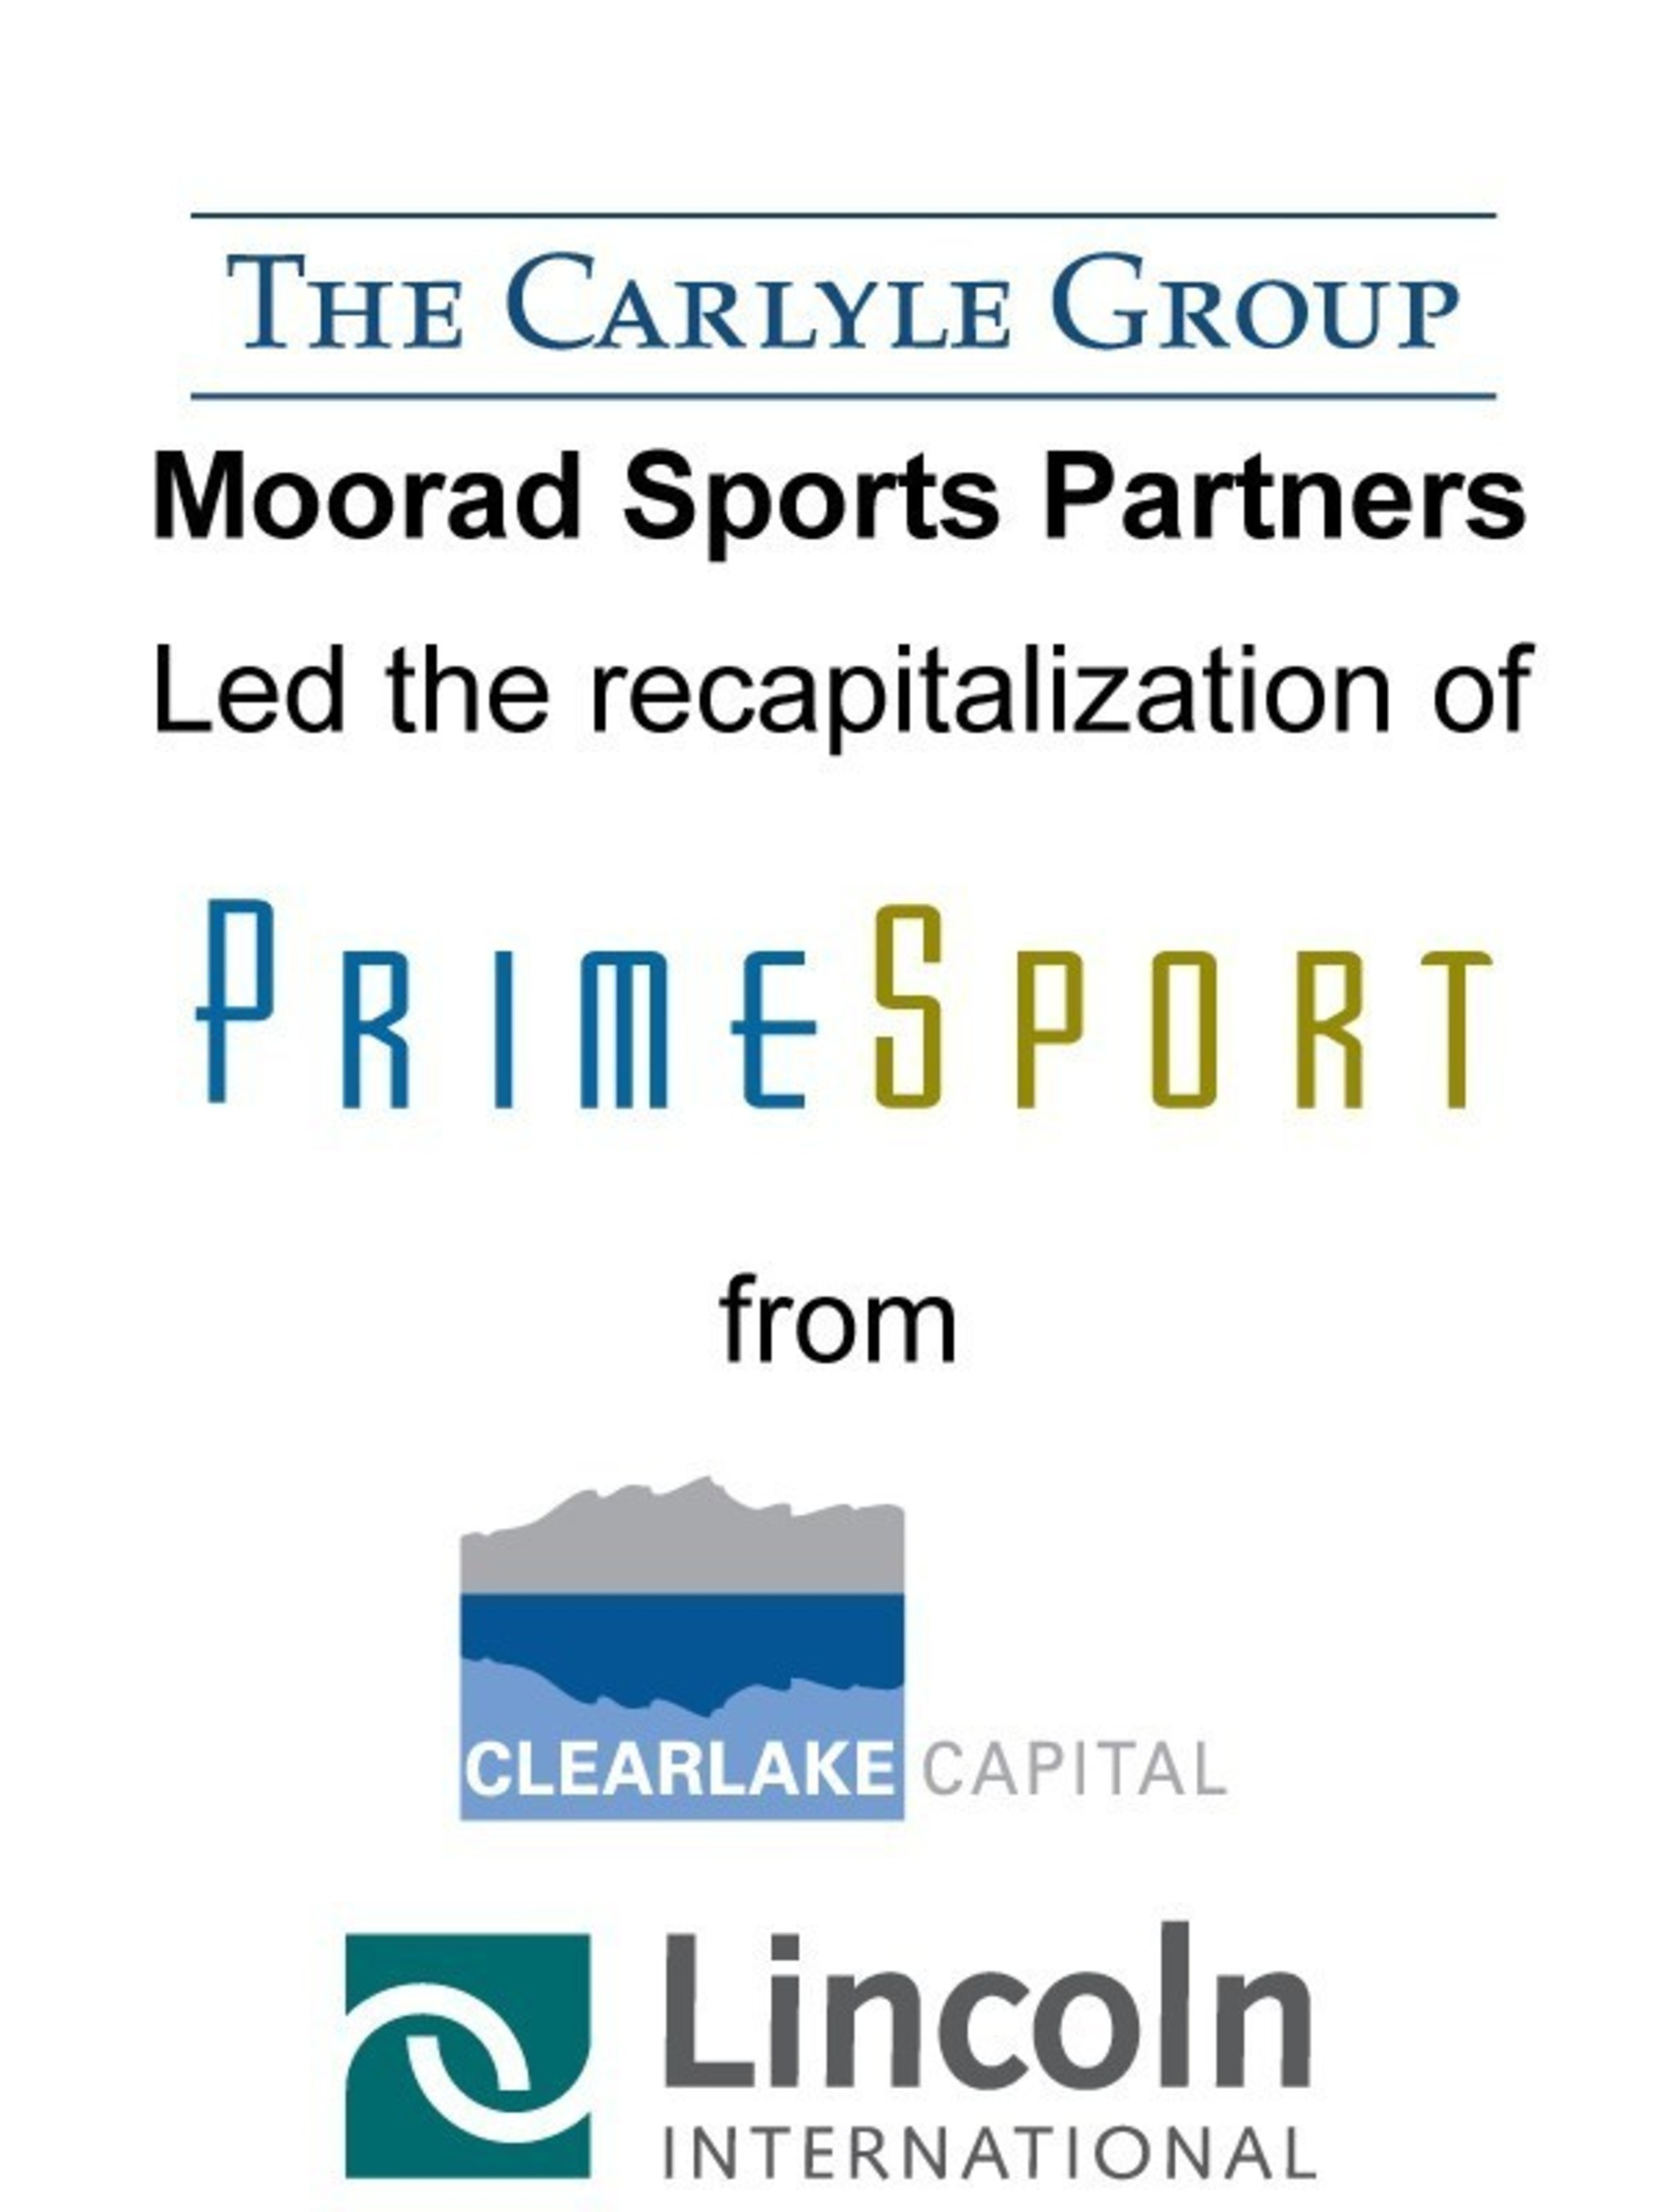 Lincoln International Represented Clearlake Capital Group in the Sale of a Majority Stake in PrimeSport Holdings to The Carlyle Group, Moorad Sports Partners and RSE Vent